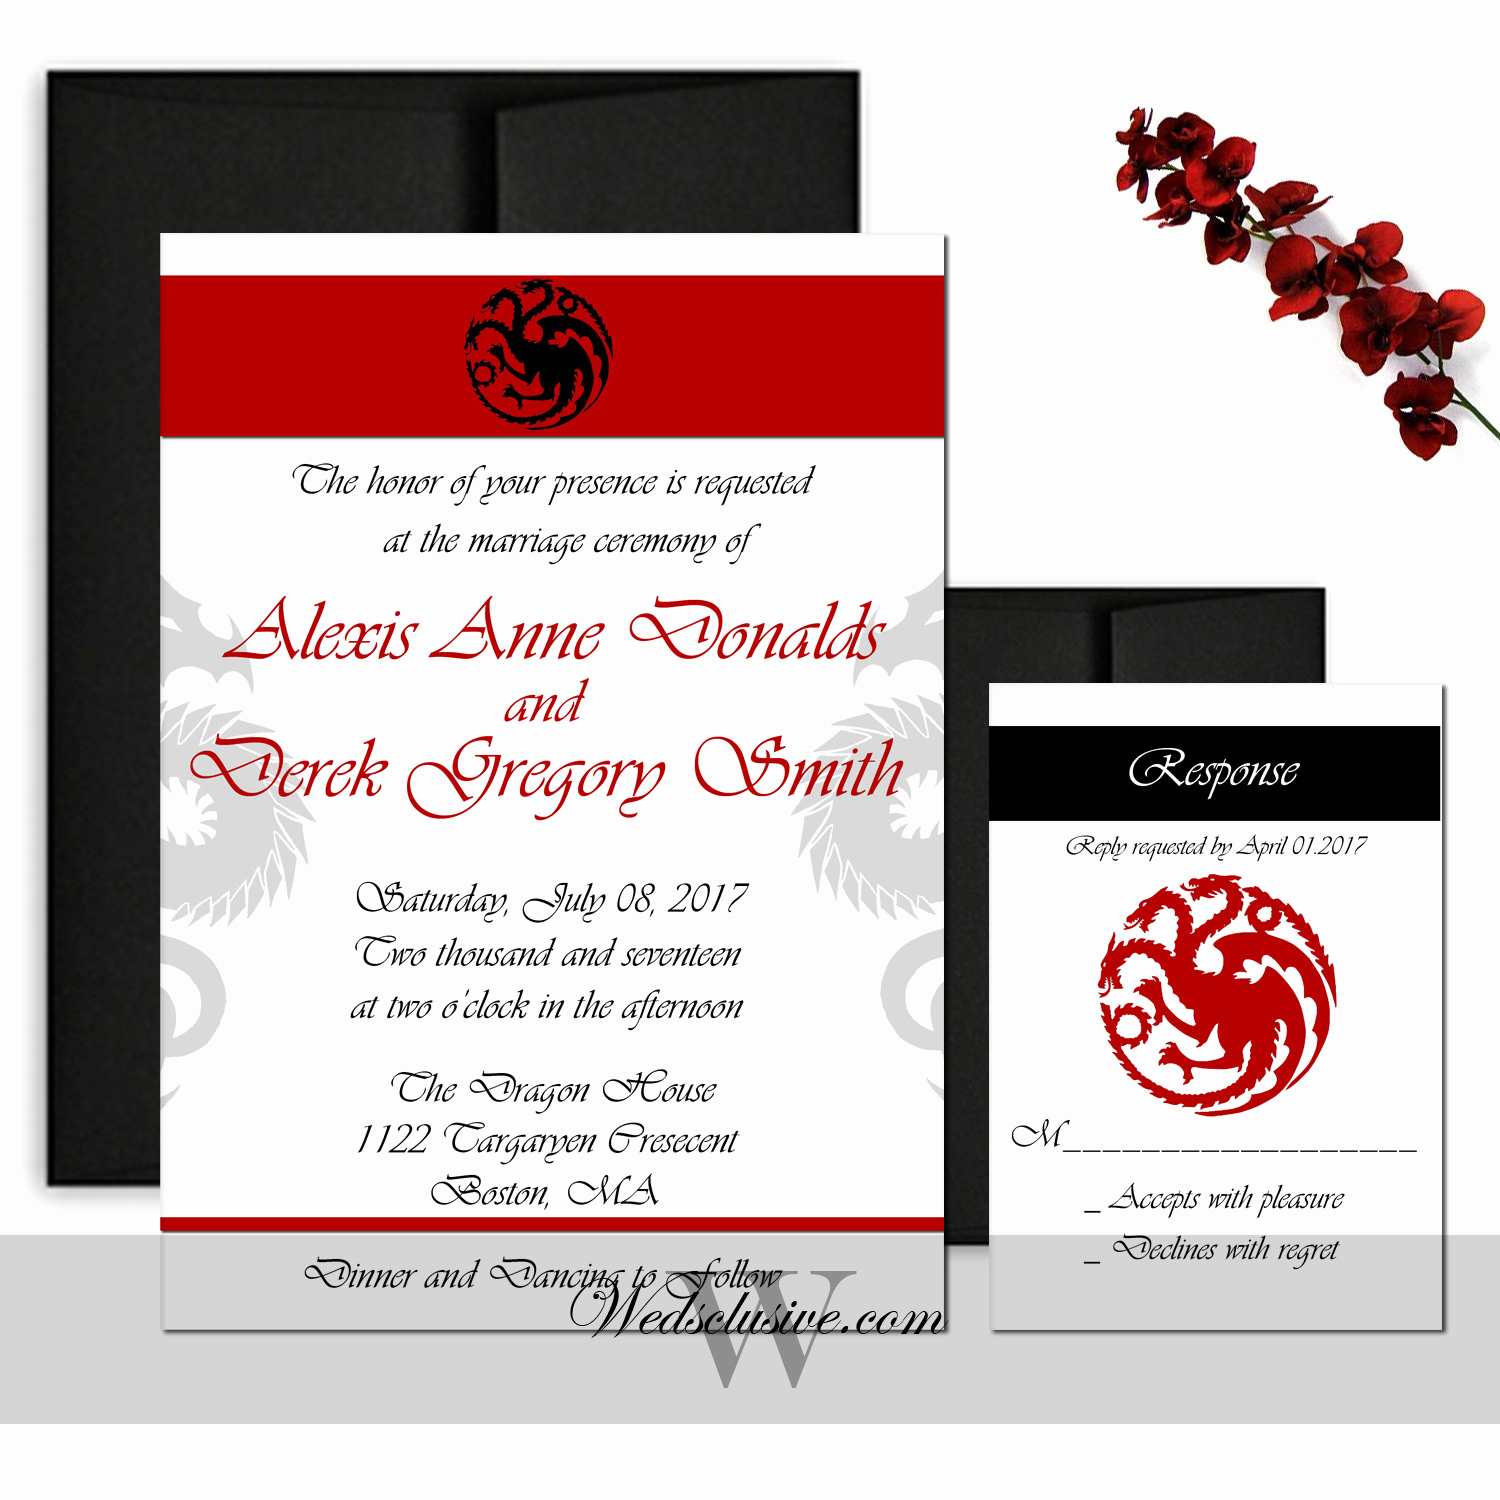 Video Game Wedding Invitation Fresh Game Of Thrones Wedding Invitations House Of Targaryen